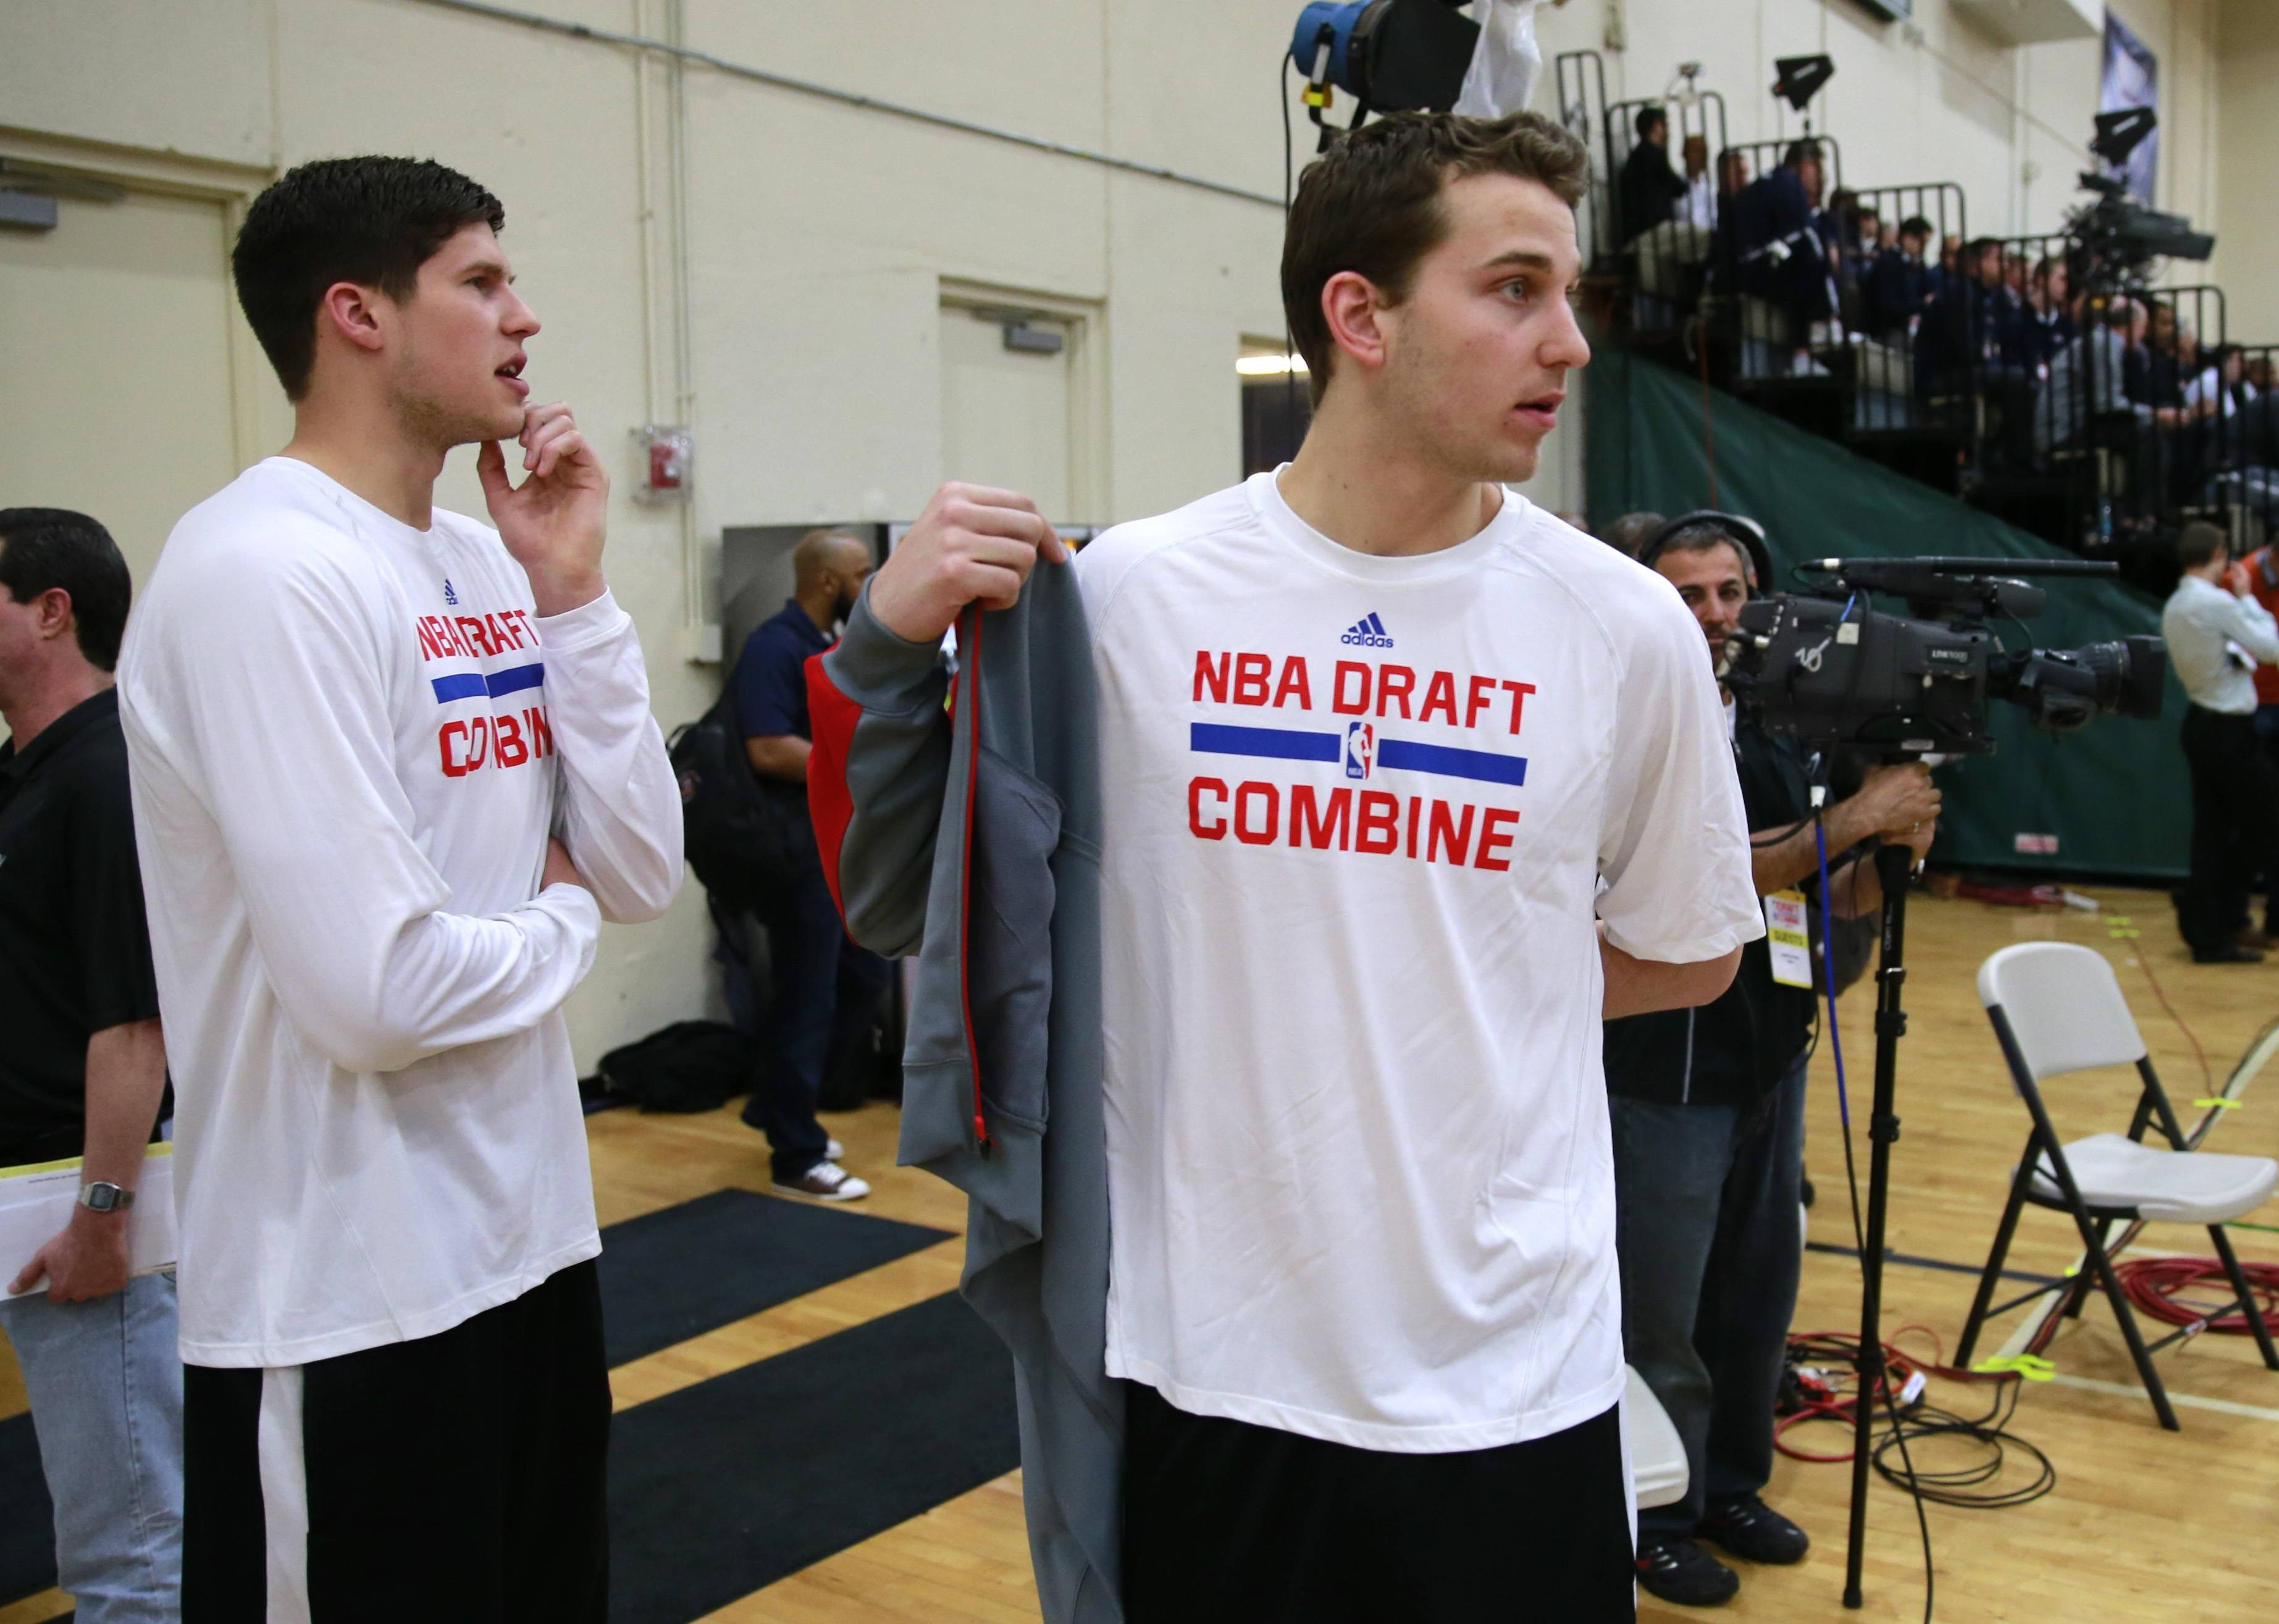 Nik Stauskas from Michigan, right, and Doug McDermontt from Creighton watch players participate in the Draft Combine on Thursday. Stauskas recorded a 35.5-inch vertical jump and could be a nice addition to the Bulls as a long-range shooter.